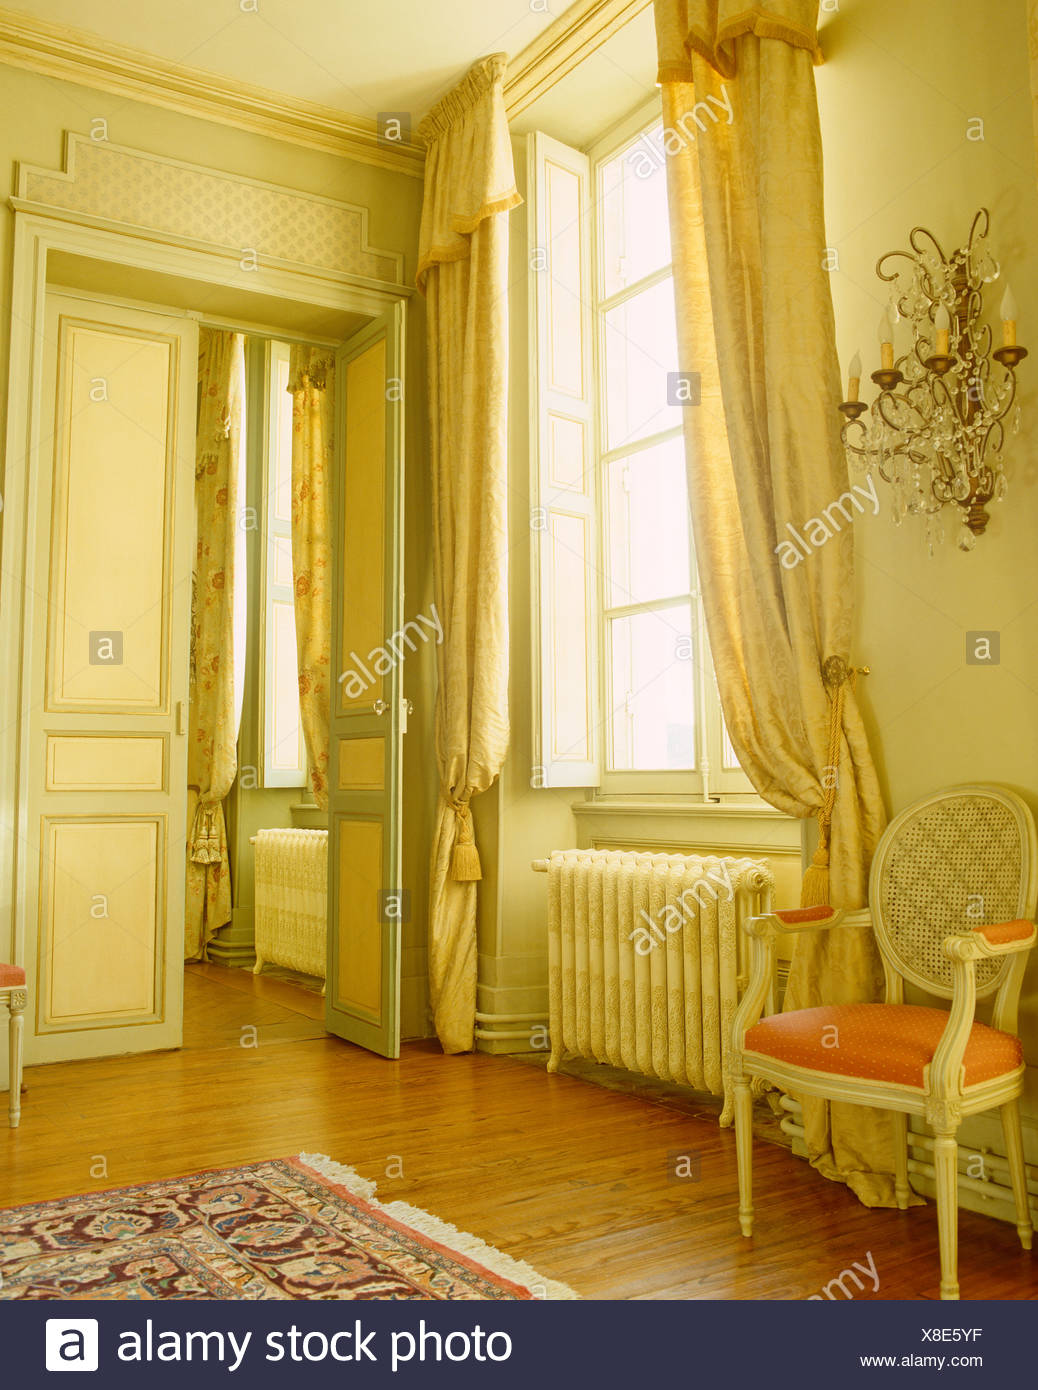 Silk drapes on tall windows in opulent French chateau dining room with painted balloon back chair and double doors & Silk drapes on tall windows in opulent French chateau dining room ...